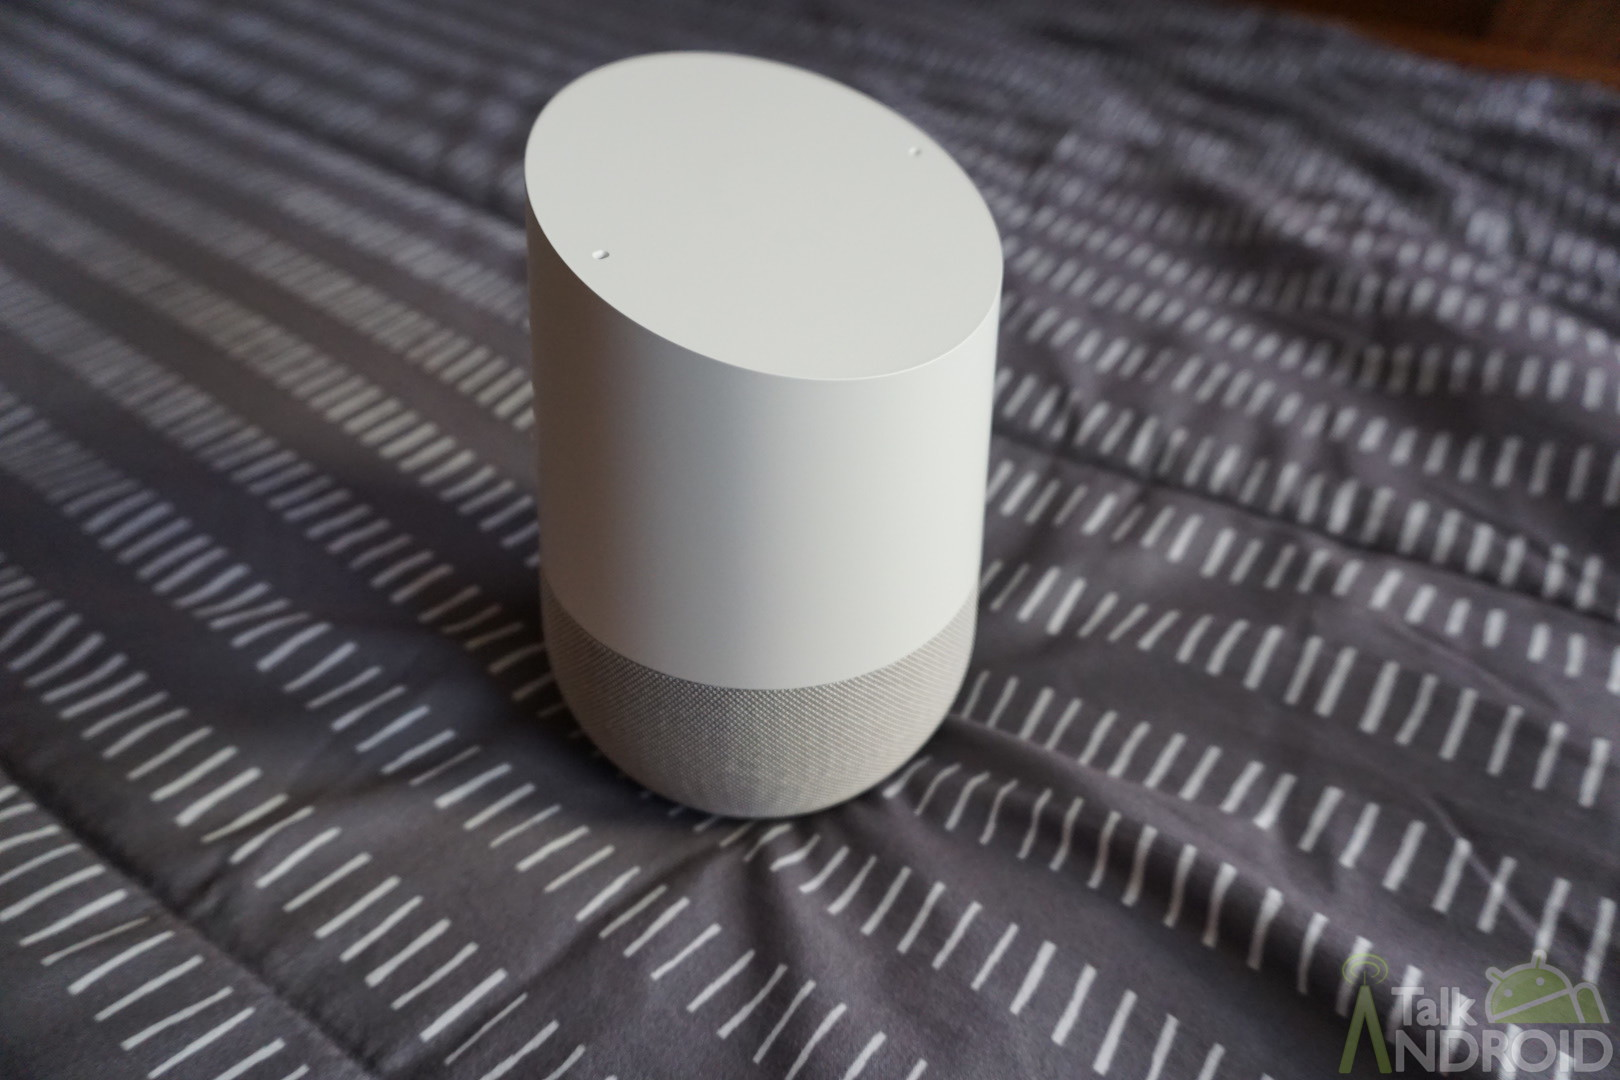 Google Home Now Streams Tracks From Your Uploaded Playlist On Play Music